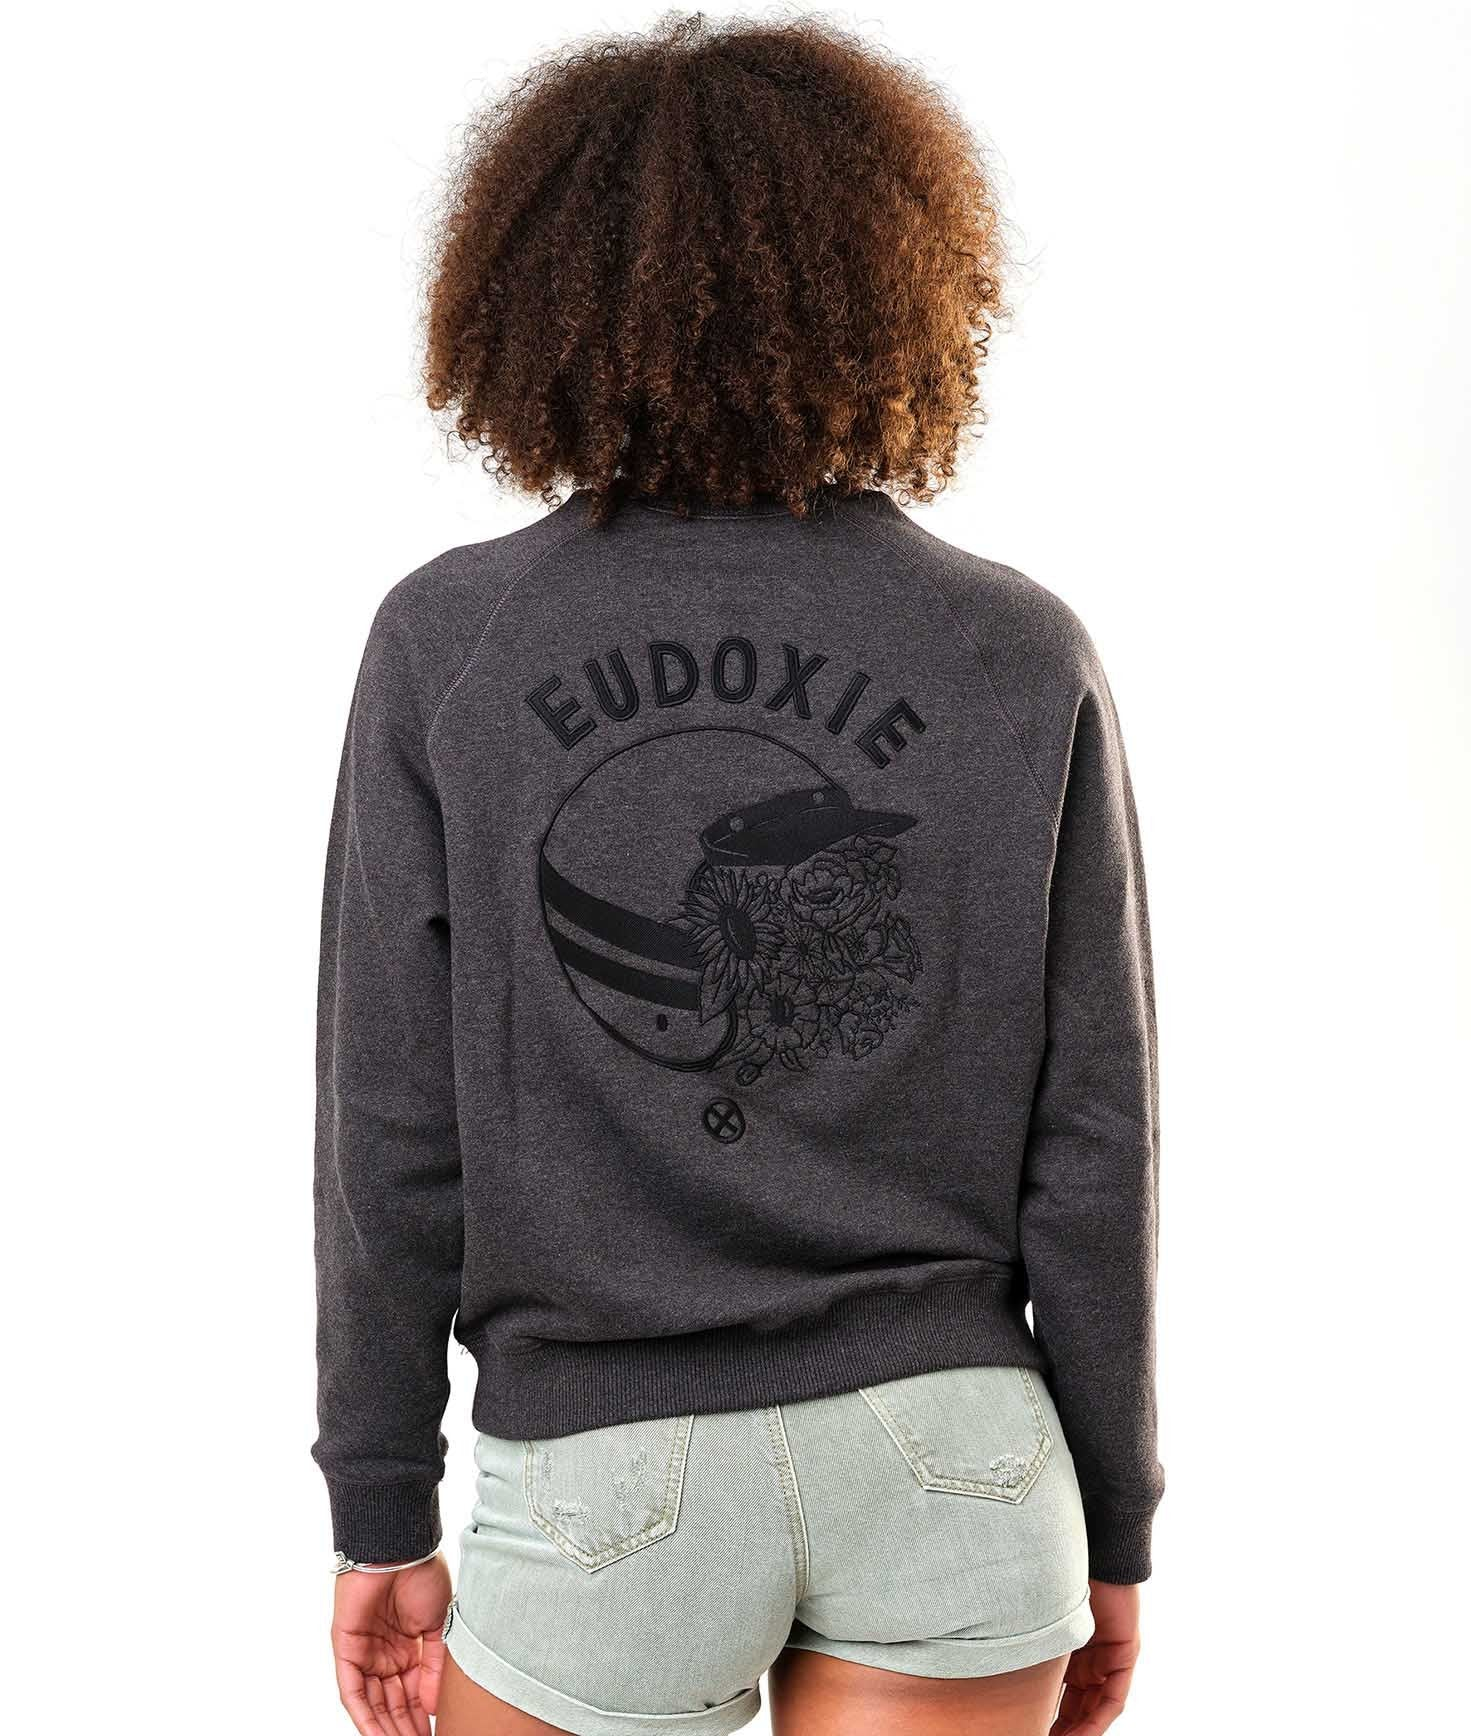 Eudoxie - Eudoxie Bonnie Sweatshirt - Hoodies | Sweatshirts | Wind Stoppers - Salt Flats Clothing